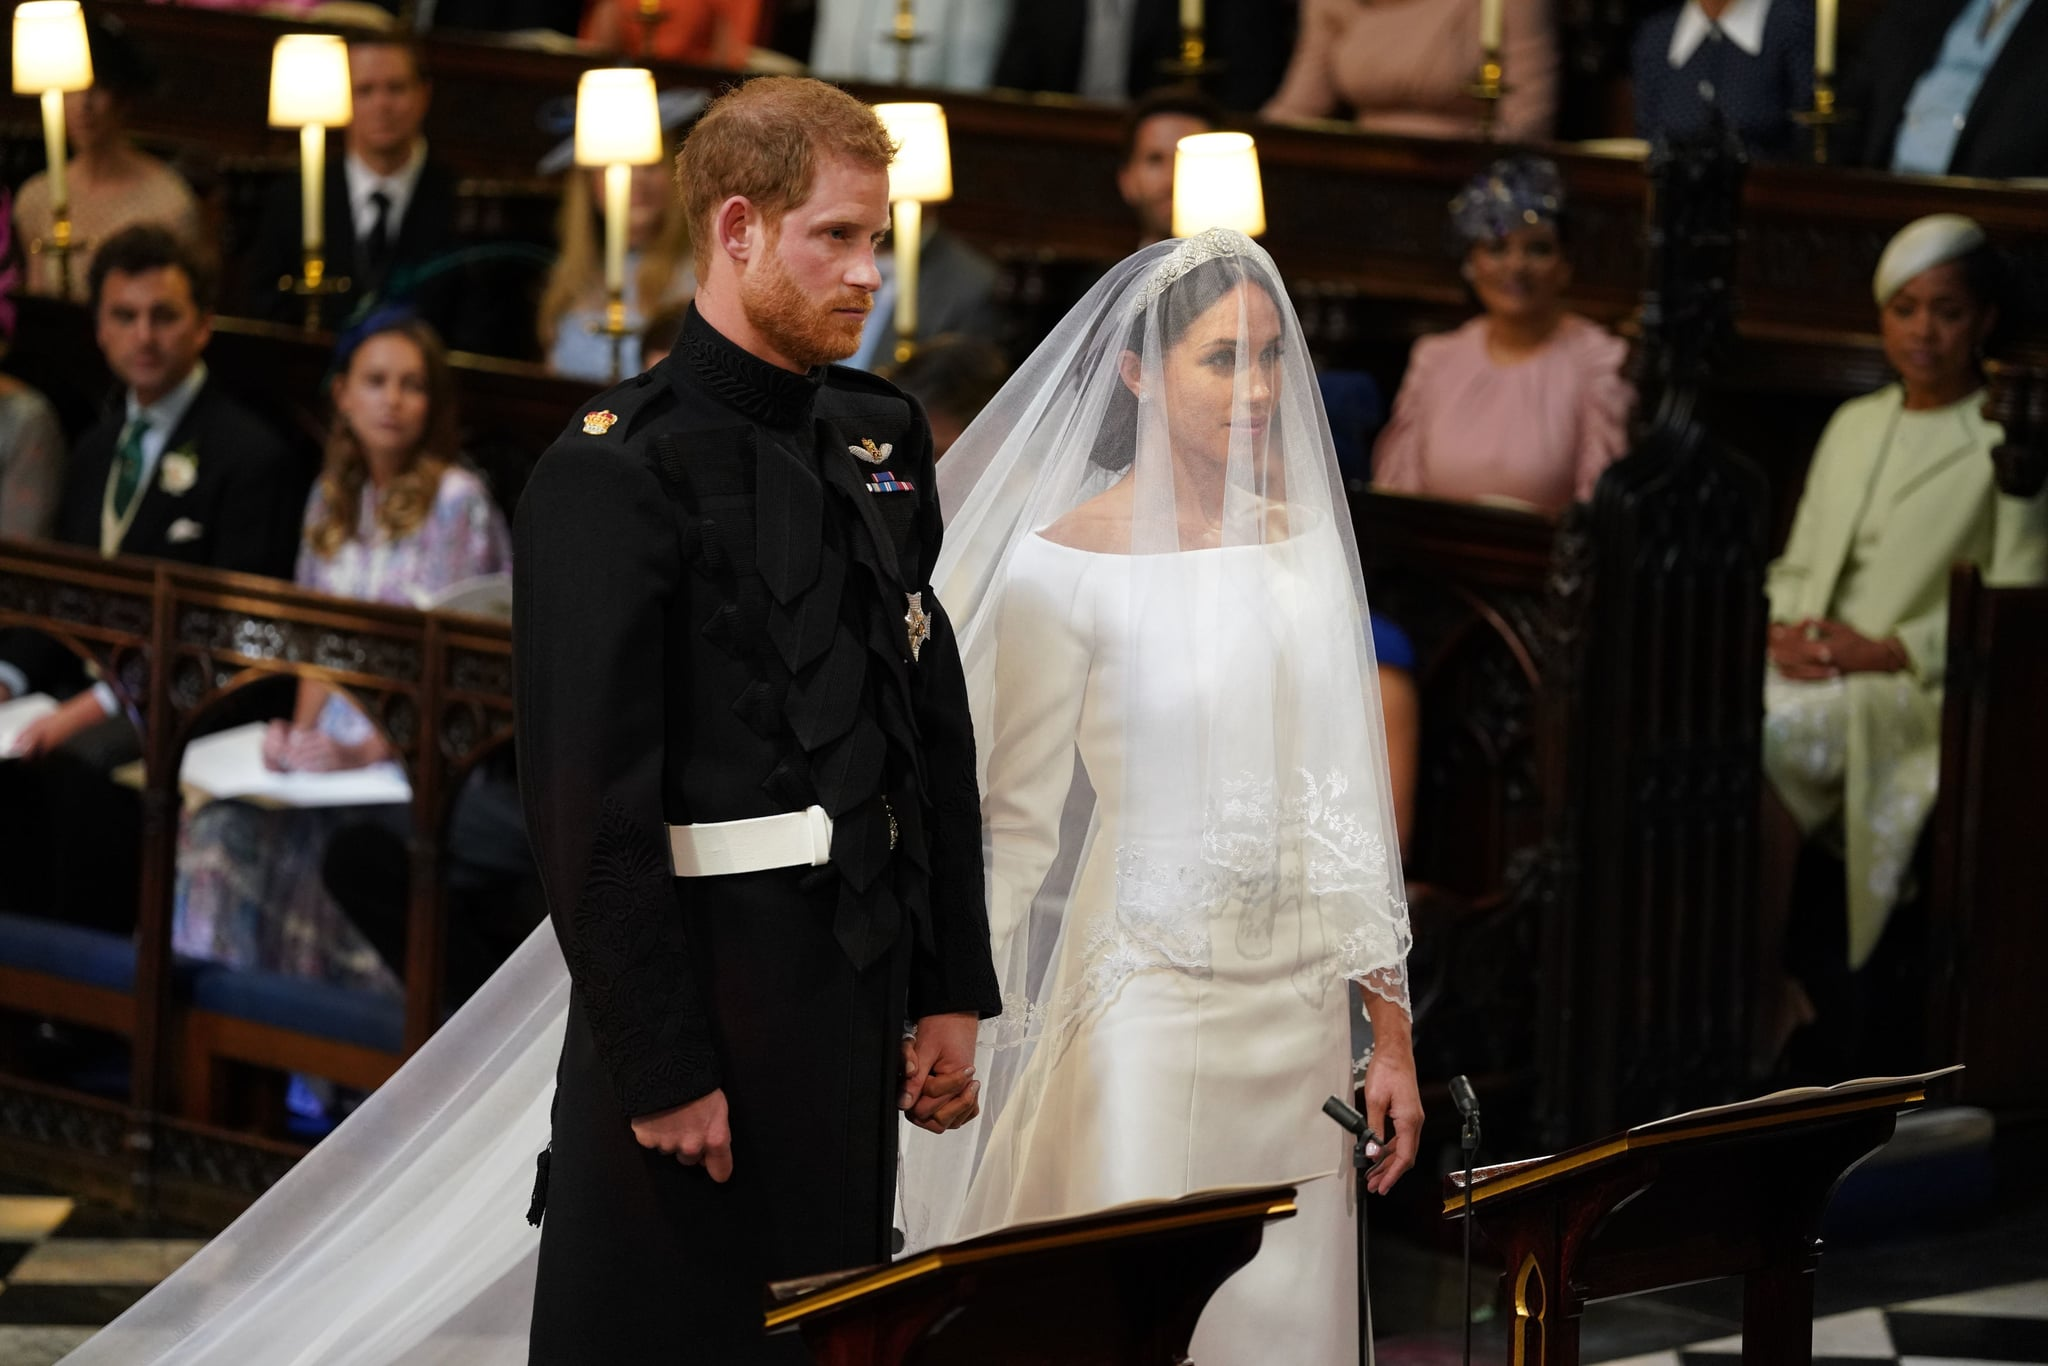 Britain's Prince Harry, Duke of Sussex (L) and US fiancee of Britain's Prince Harry Meghan Markle stand together for their wedding in St George's Chapel, Windsor Castle, in Windsor, on May 19, 2018. (Photo by Dominic Lipinski / POOL / AFP)        (Photo credit should read DOMINIC LIPINSKI/AFP/Getty Images)